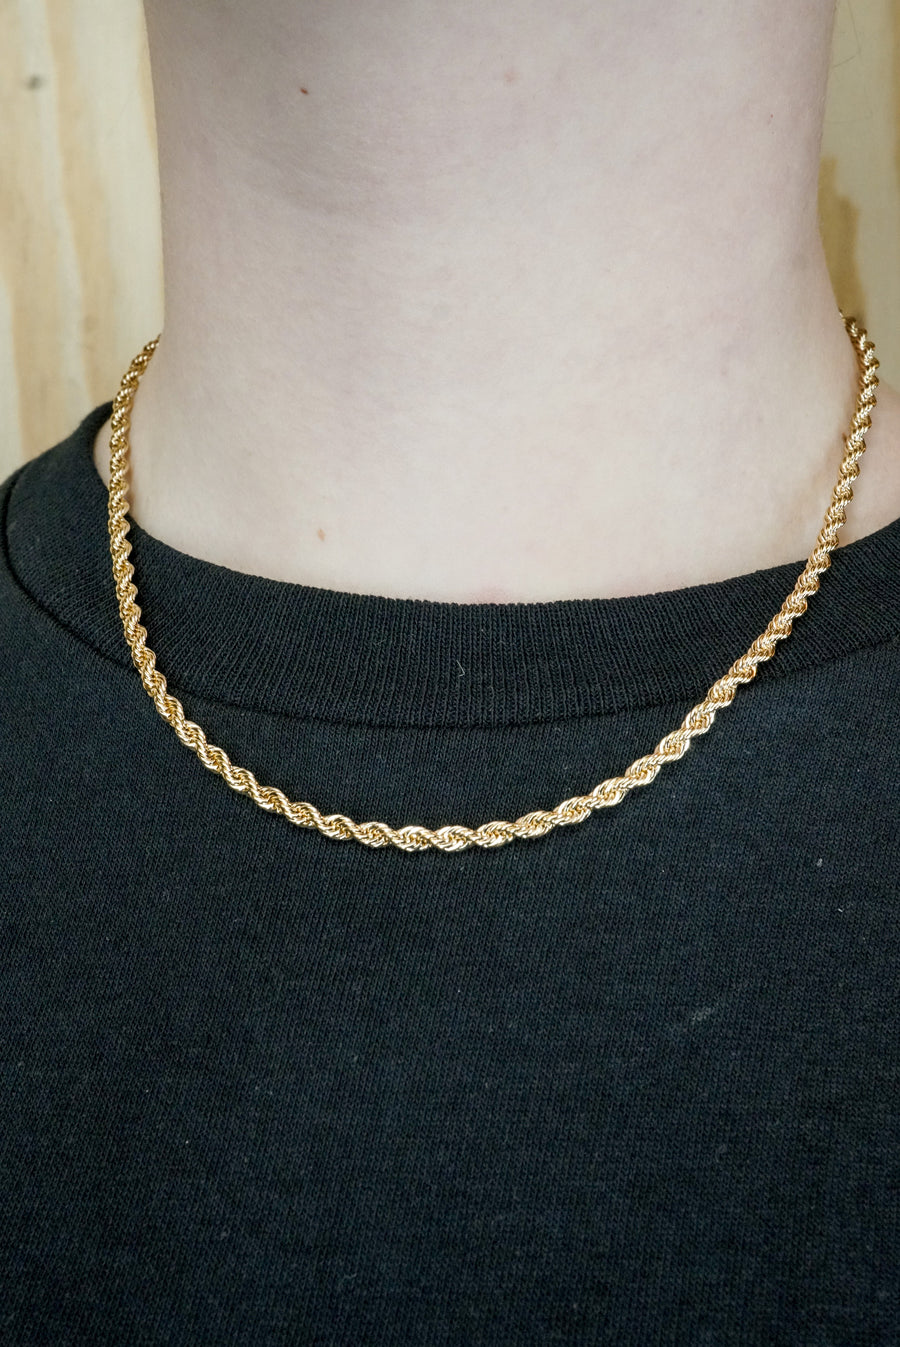 Necklace rope chain medium